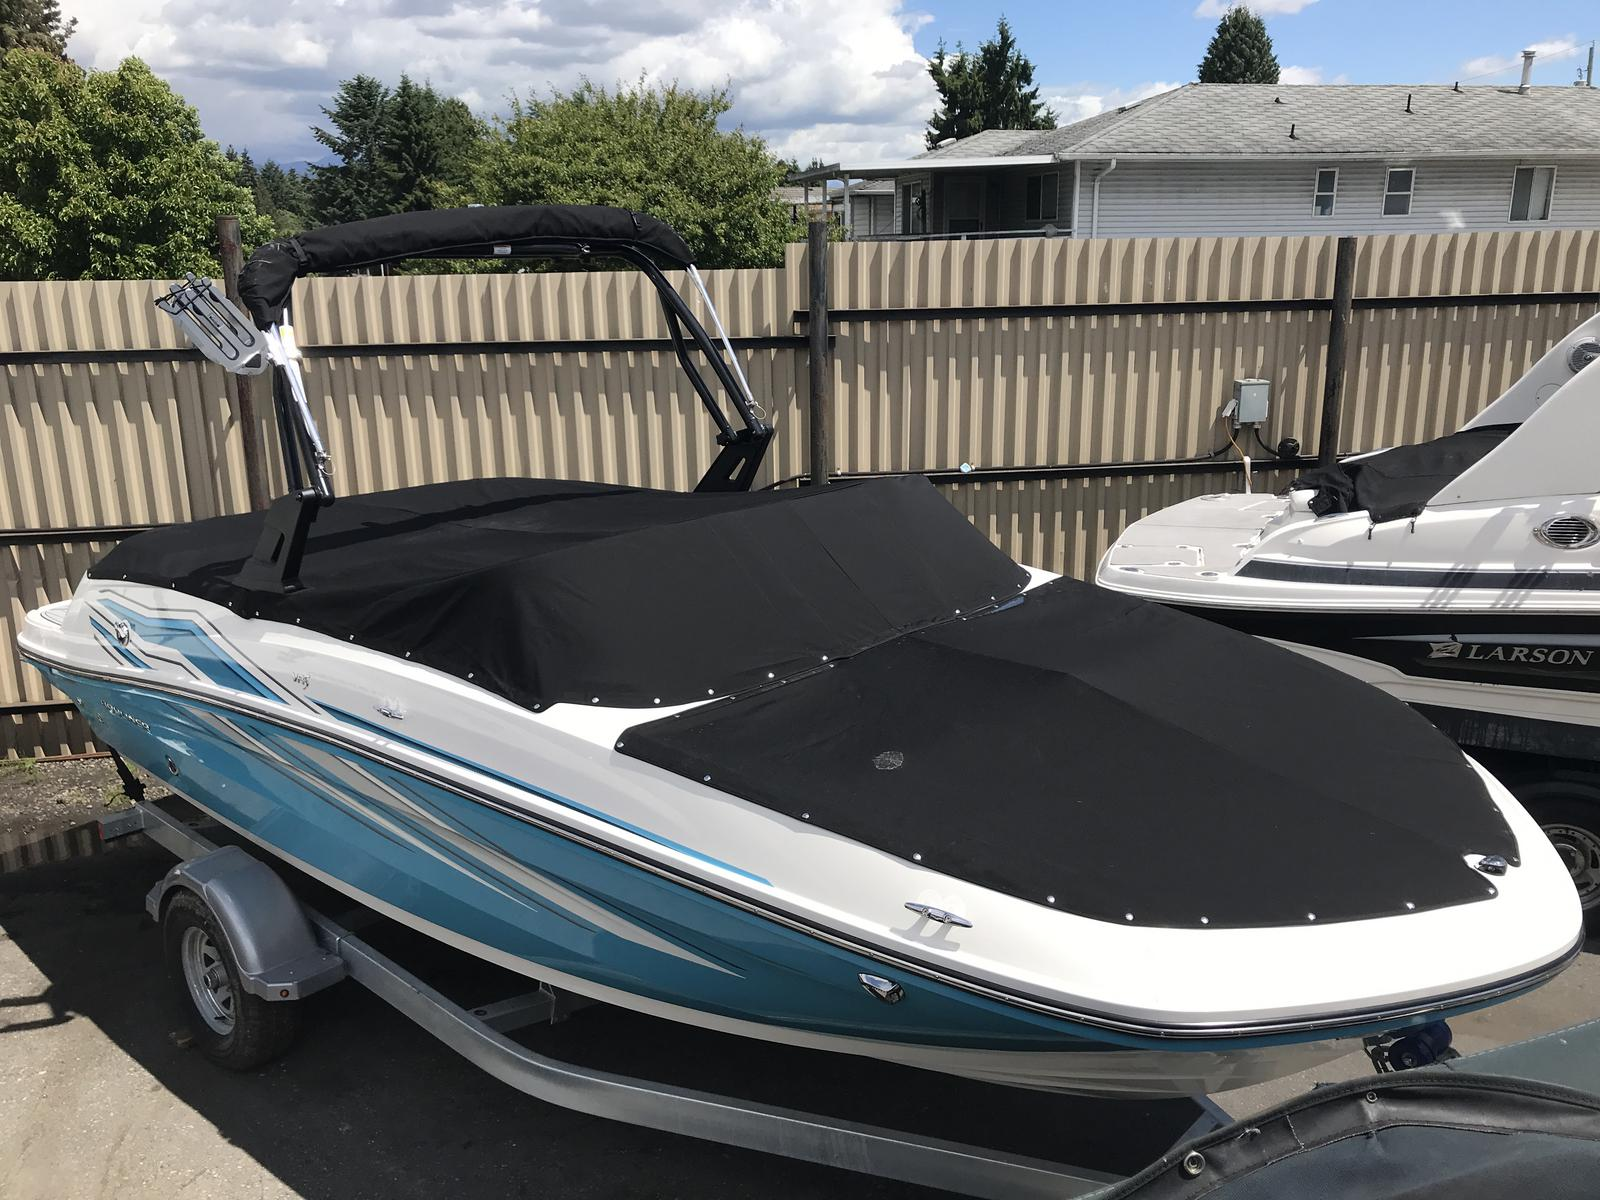 2019 Bayliner boat for sale, model of the boat is VR5 Bowrider & Image # 2 of 23